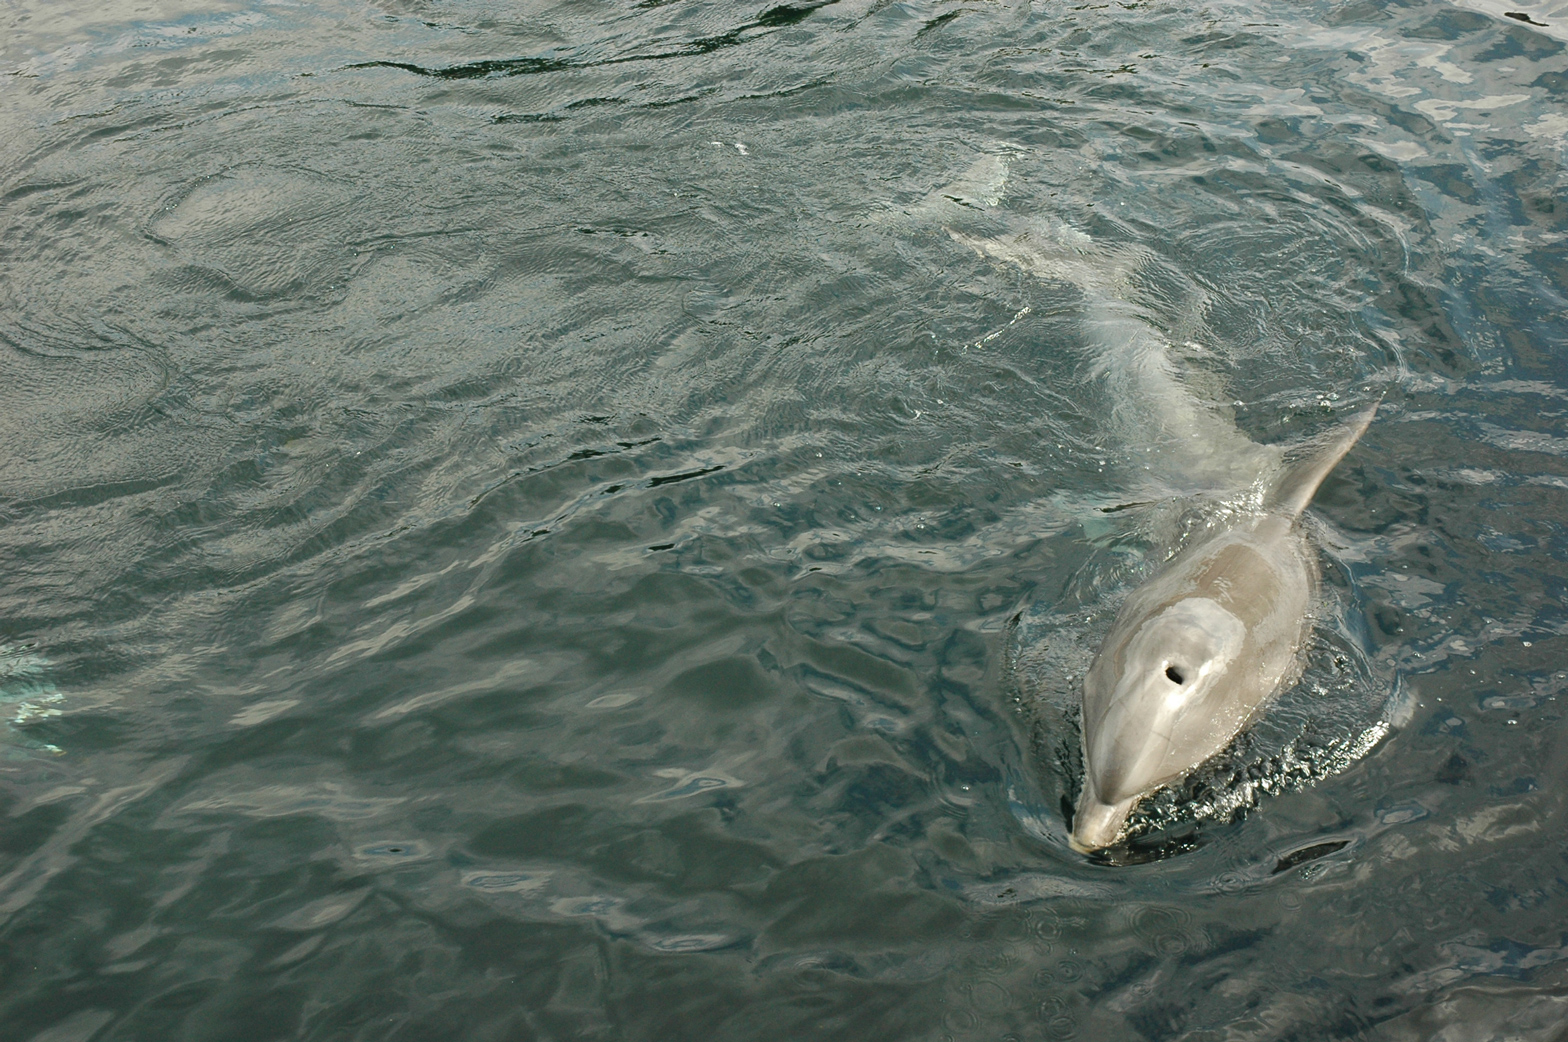 A common bottlenose dolphin swimming. <div class='credit'><strong>Credit:</strong> A common bottlenose dolphin swimming. </div>